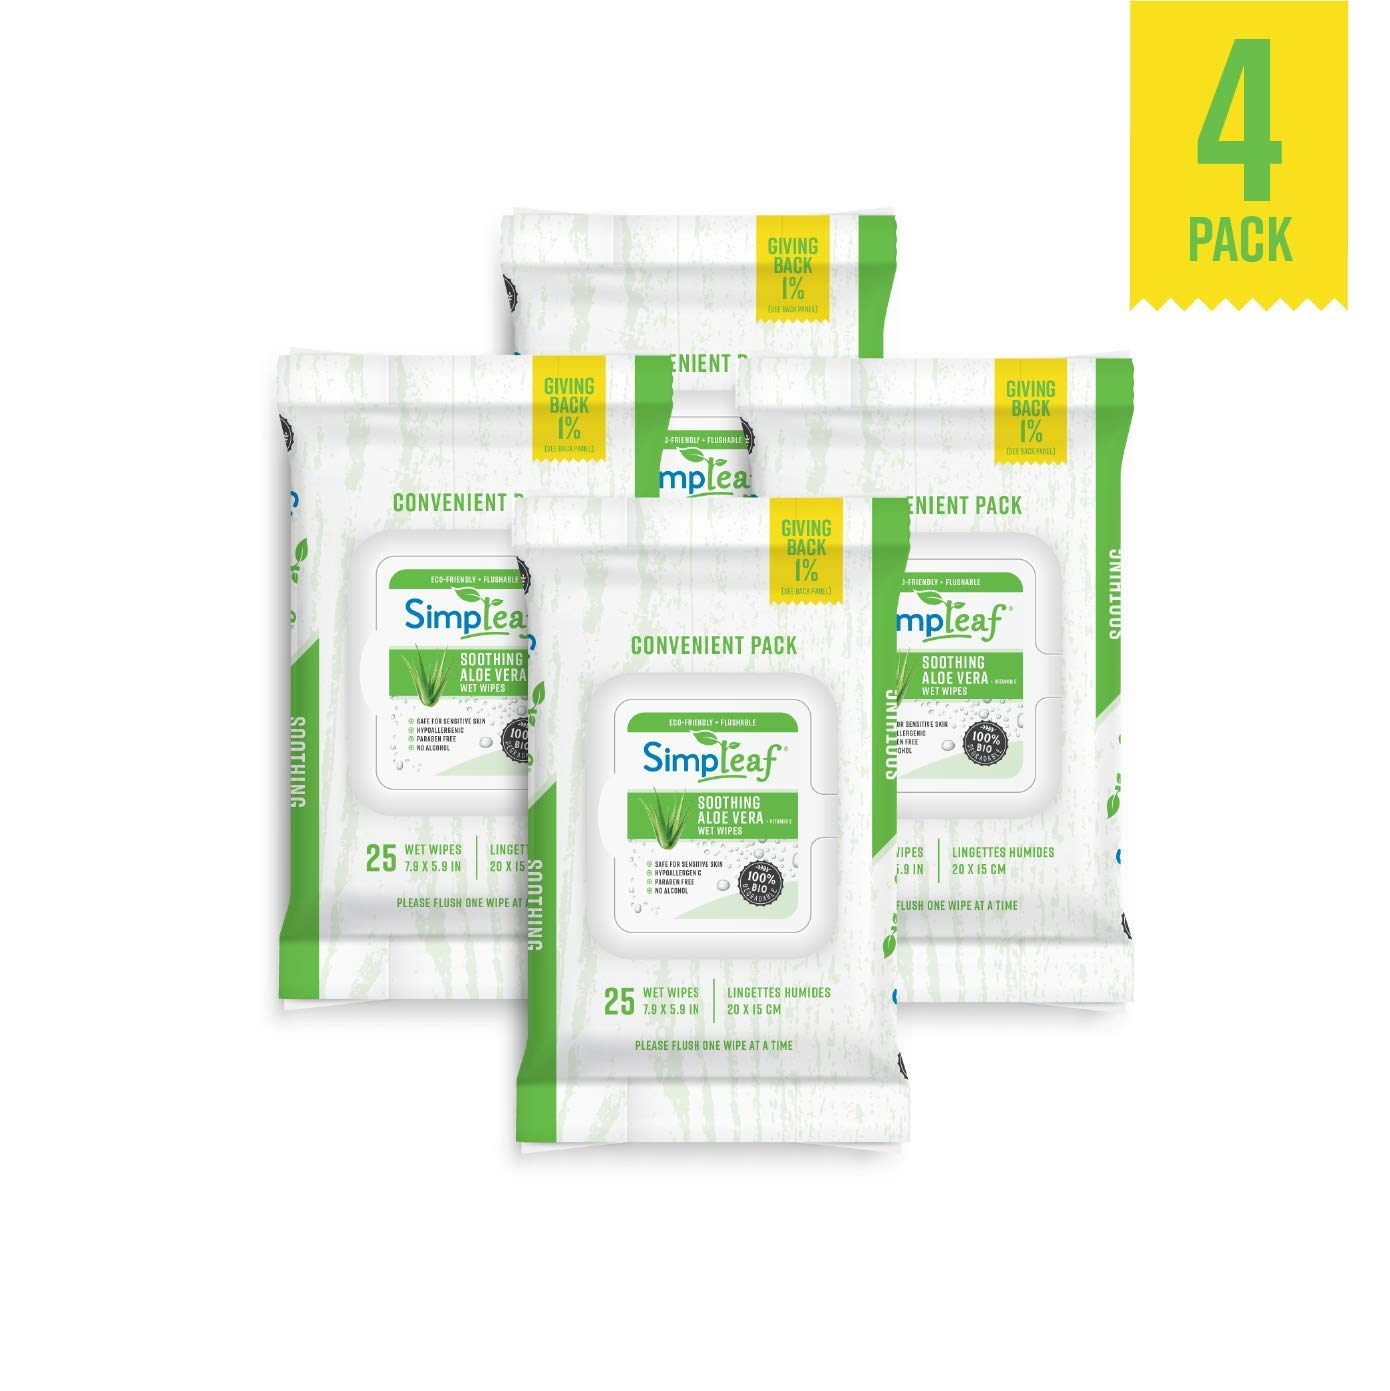 Soothing Aloe Vera /& Vitamin E Formula | Hypoallergenic /& Safe for Sensitive Skin Eco- Friendly Paraben /& Alcohol Free Simpleaf Flushable Wet Wipes 2 Pack 25-Count